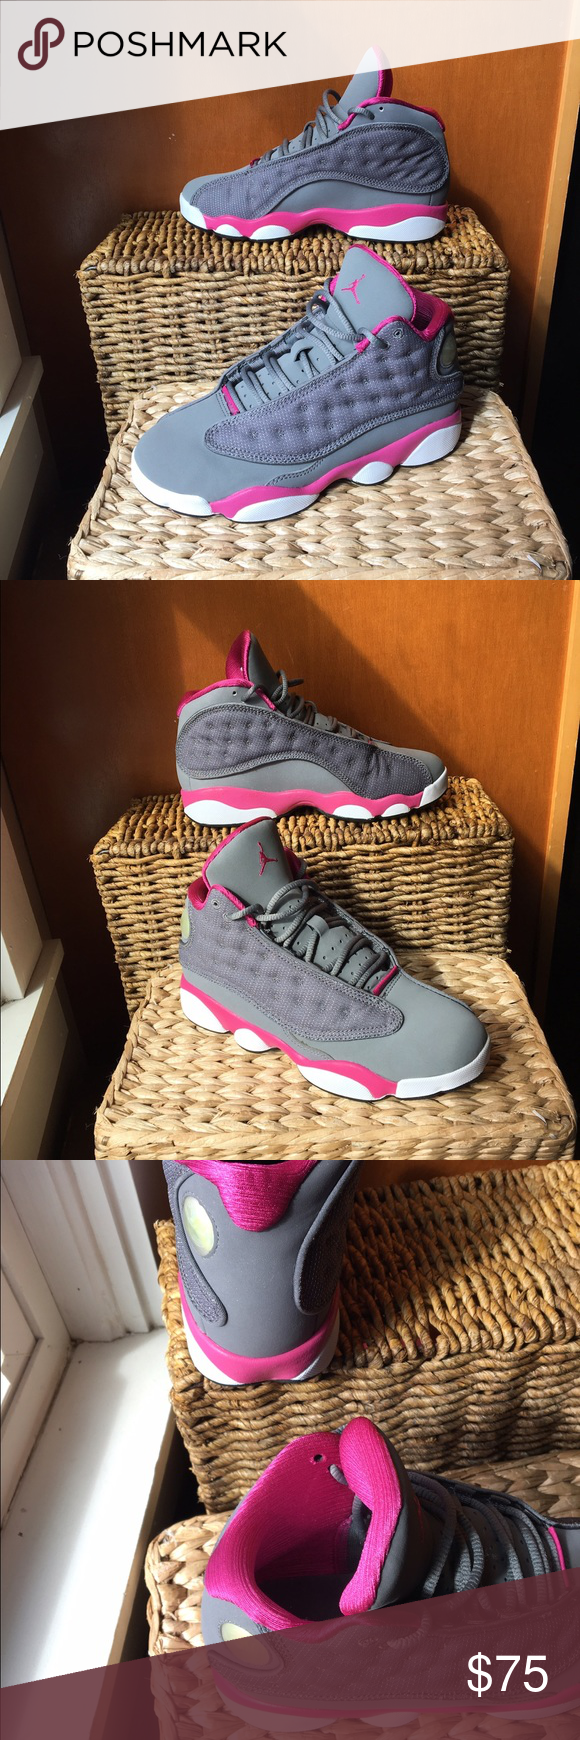 b7a737b0f03a35 Air Jordan Retro 13 Grey Pink size 3Y Nike Air Jordan 13 Retro COOL GREY